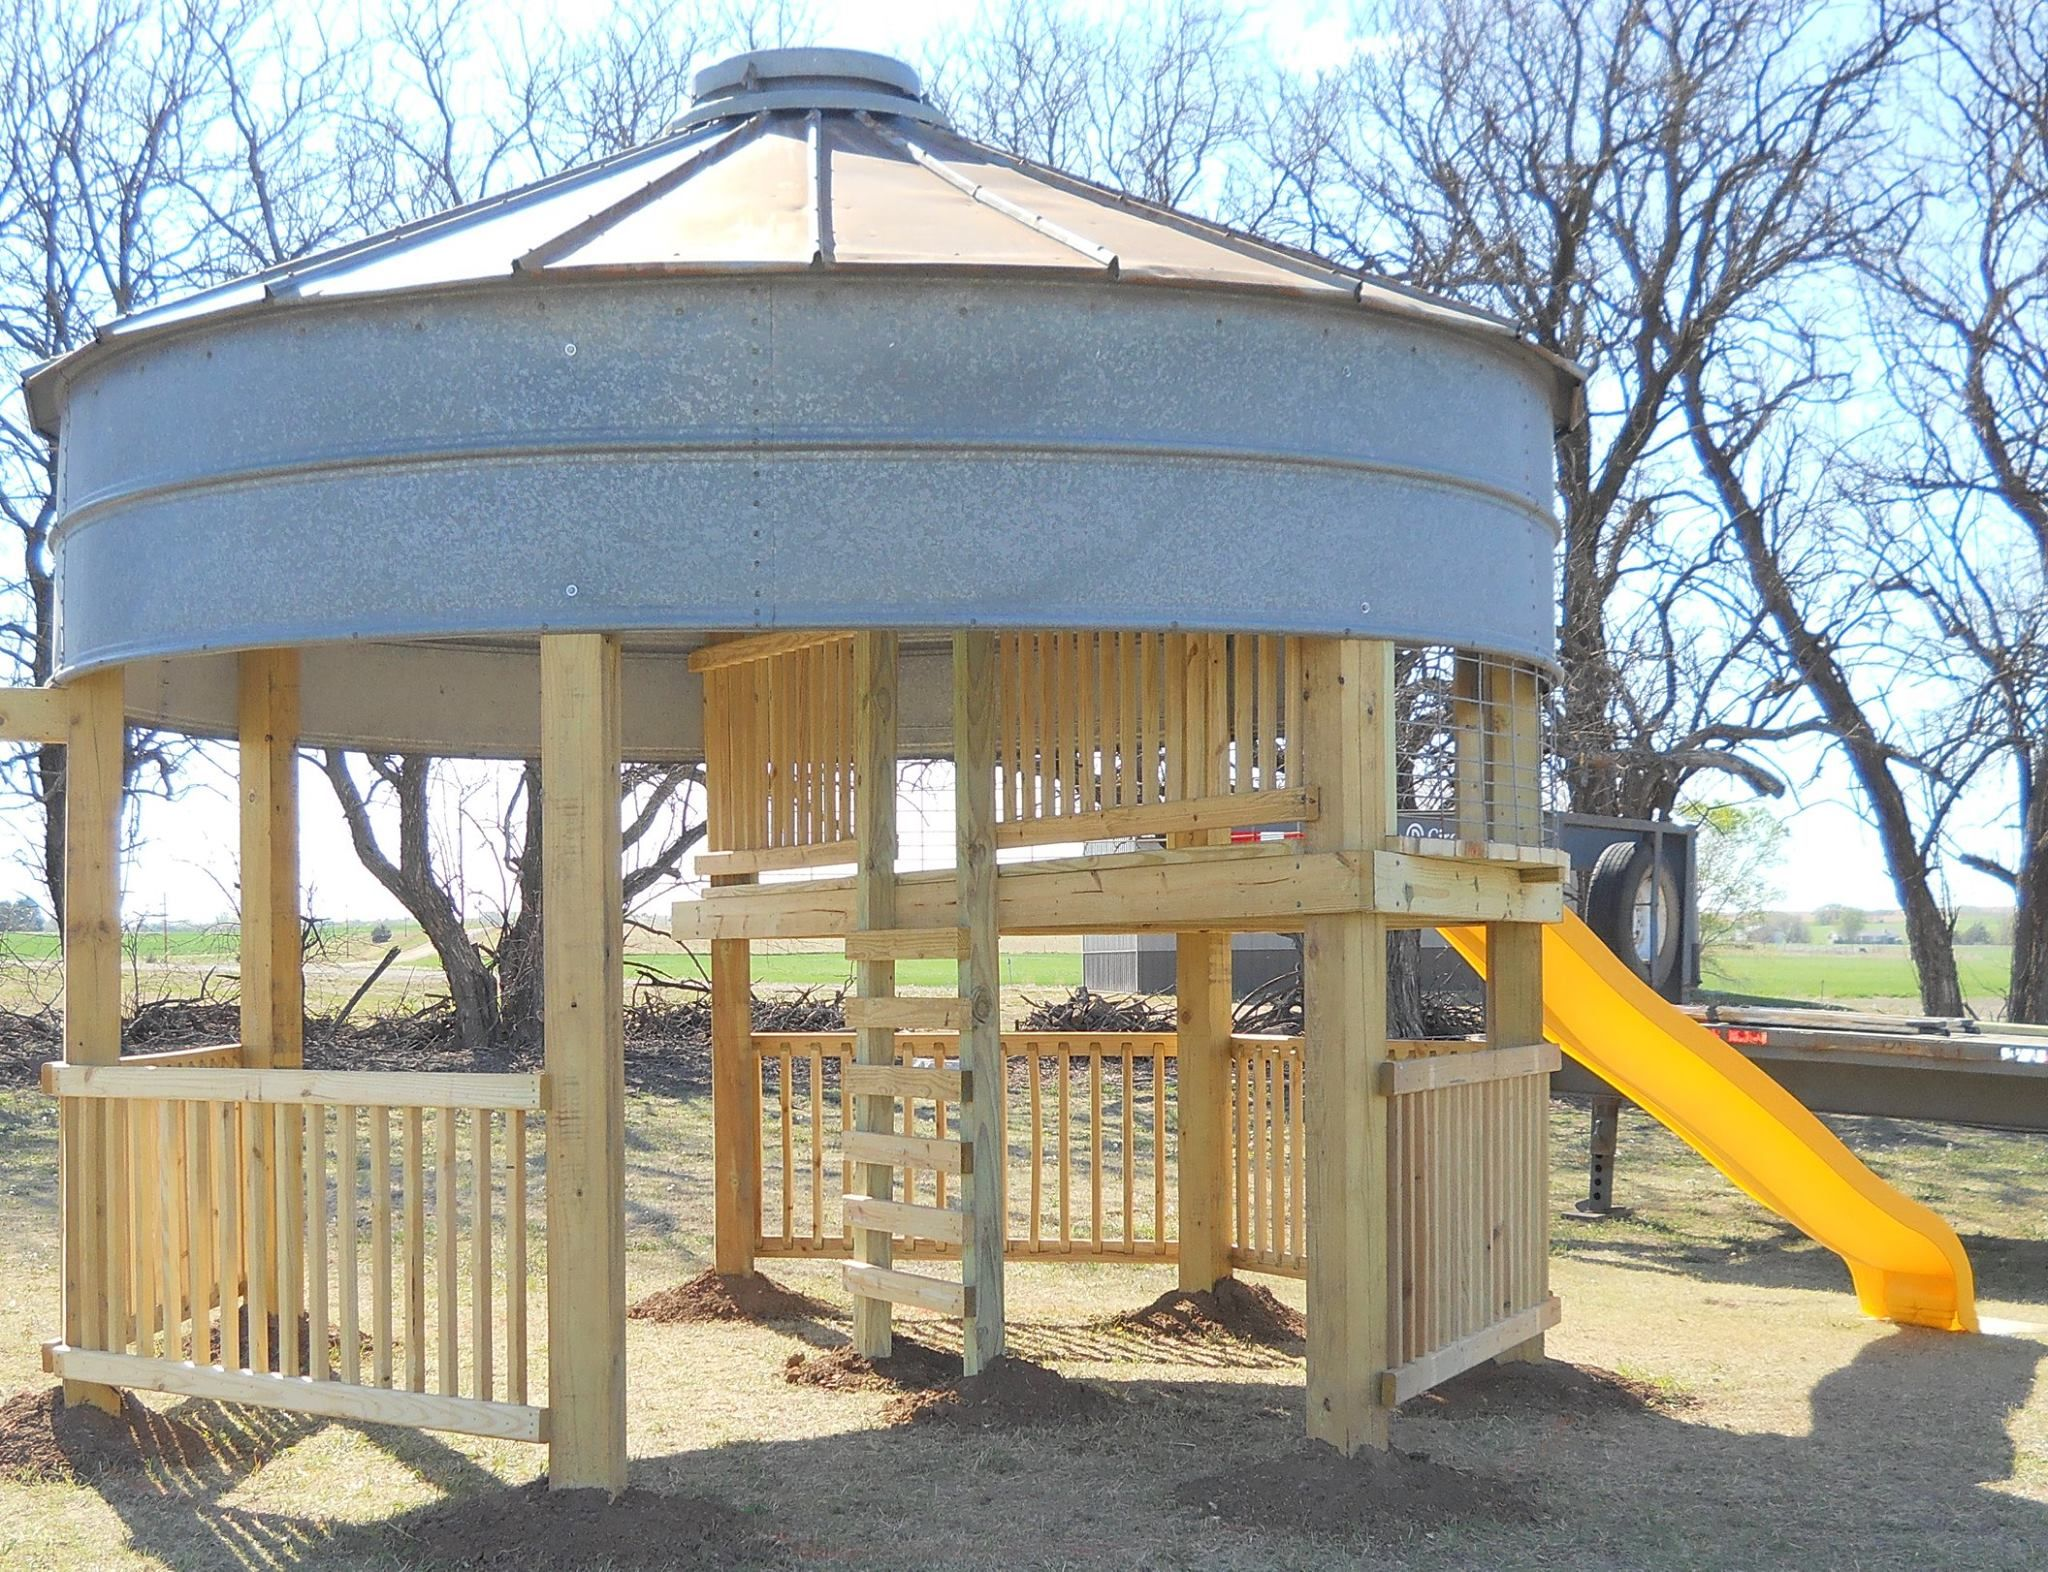 Woodworking Supplies Canada Play houses, Gazebo, Backyard